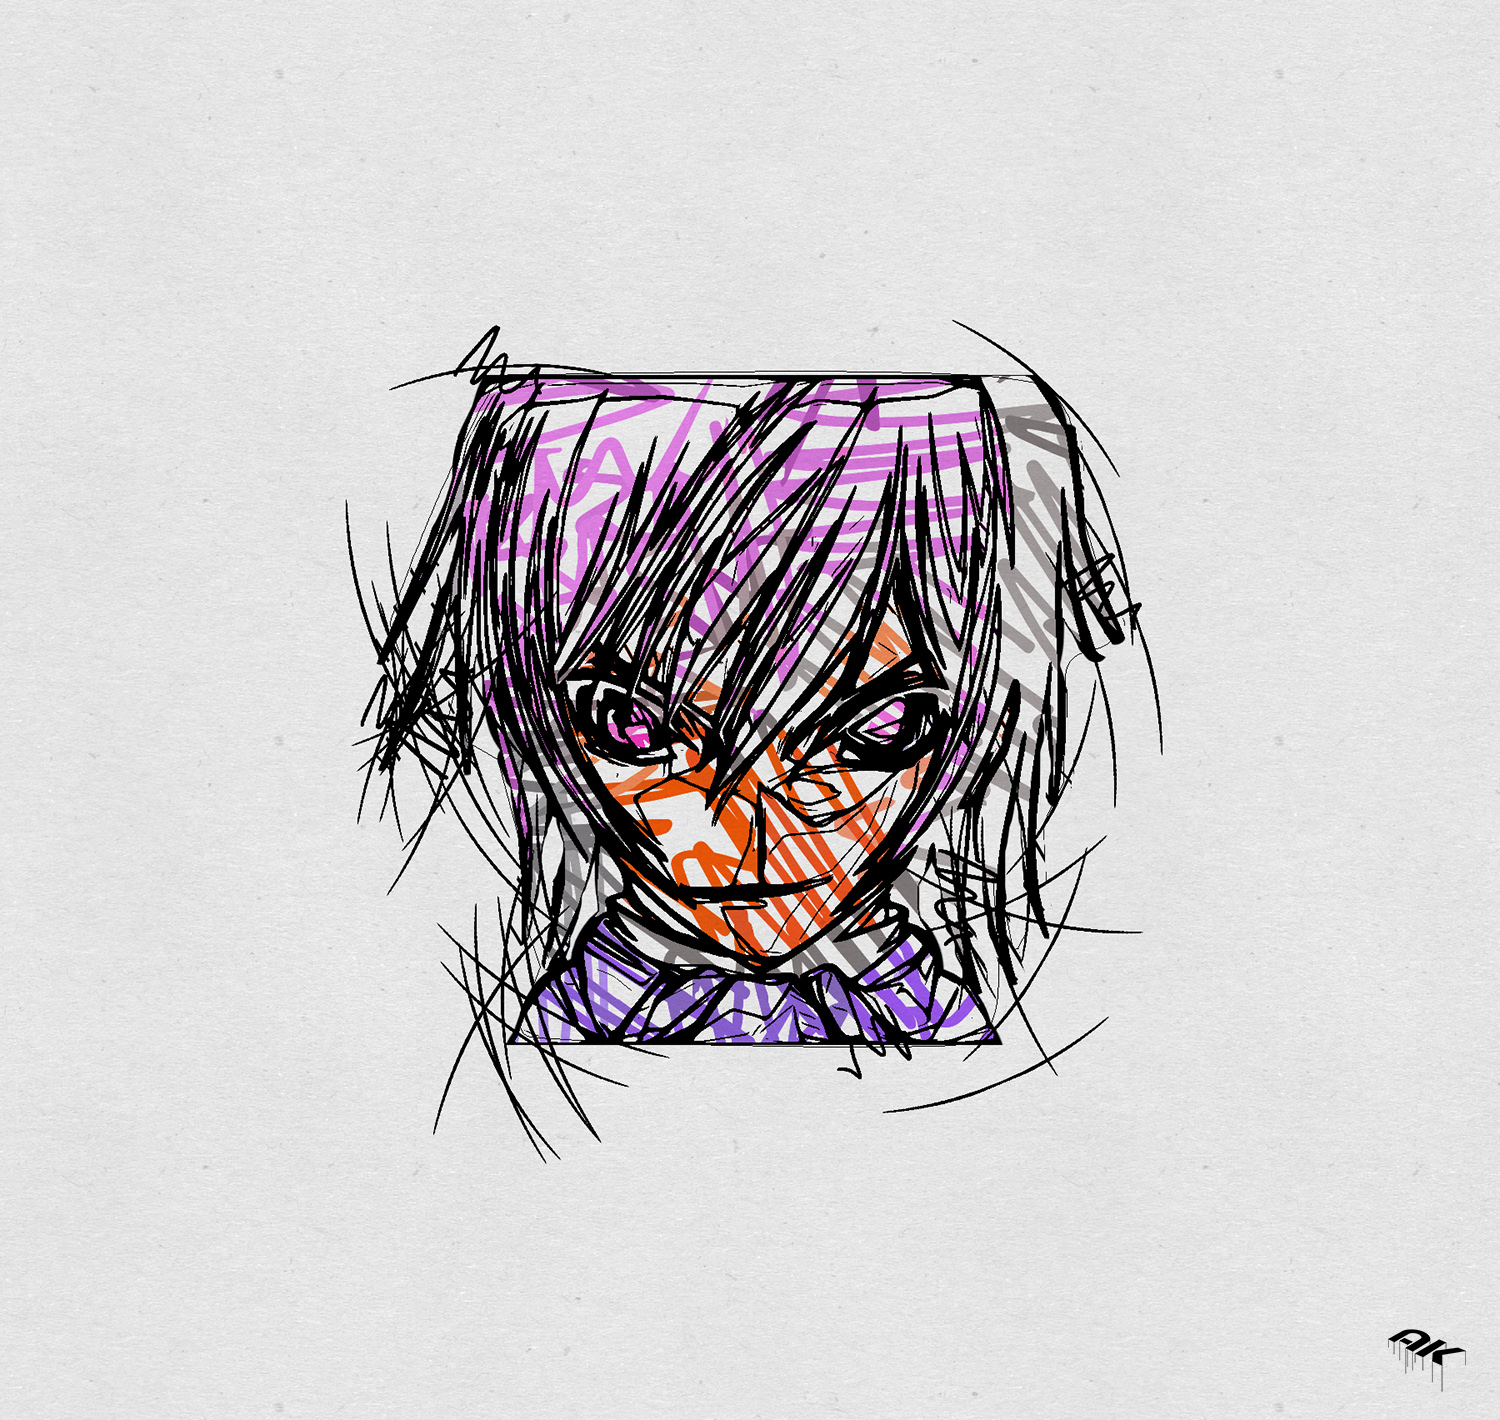 anime-character-1-copyright-andrew-knutt